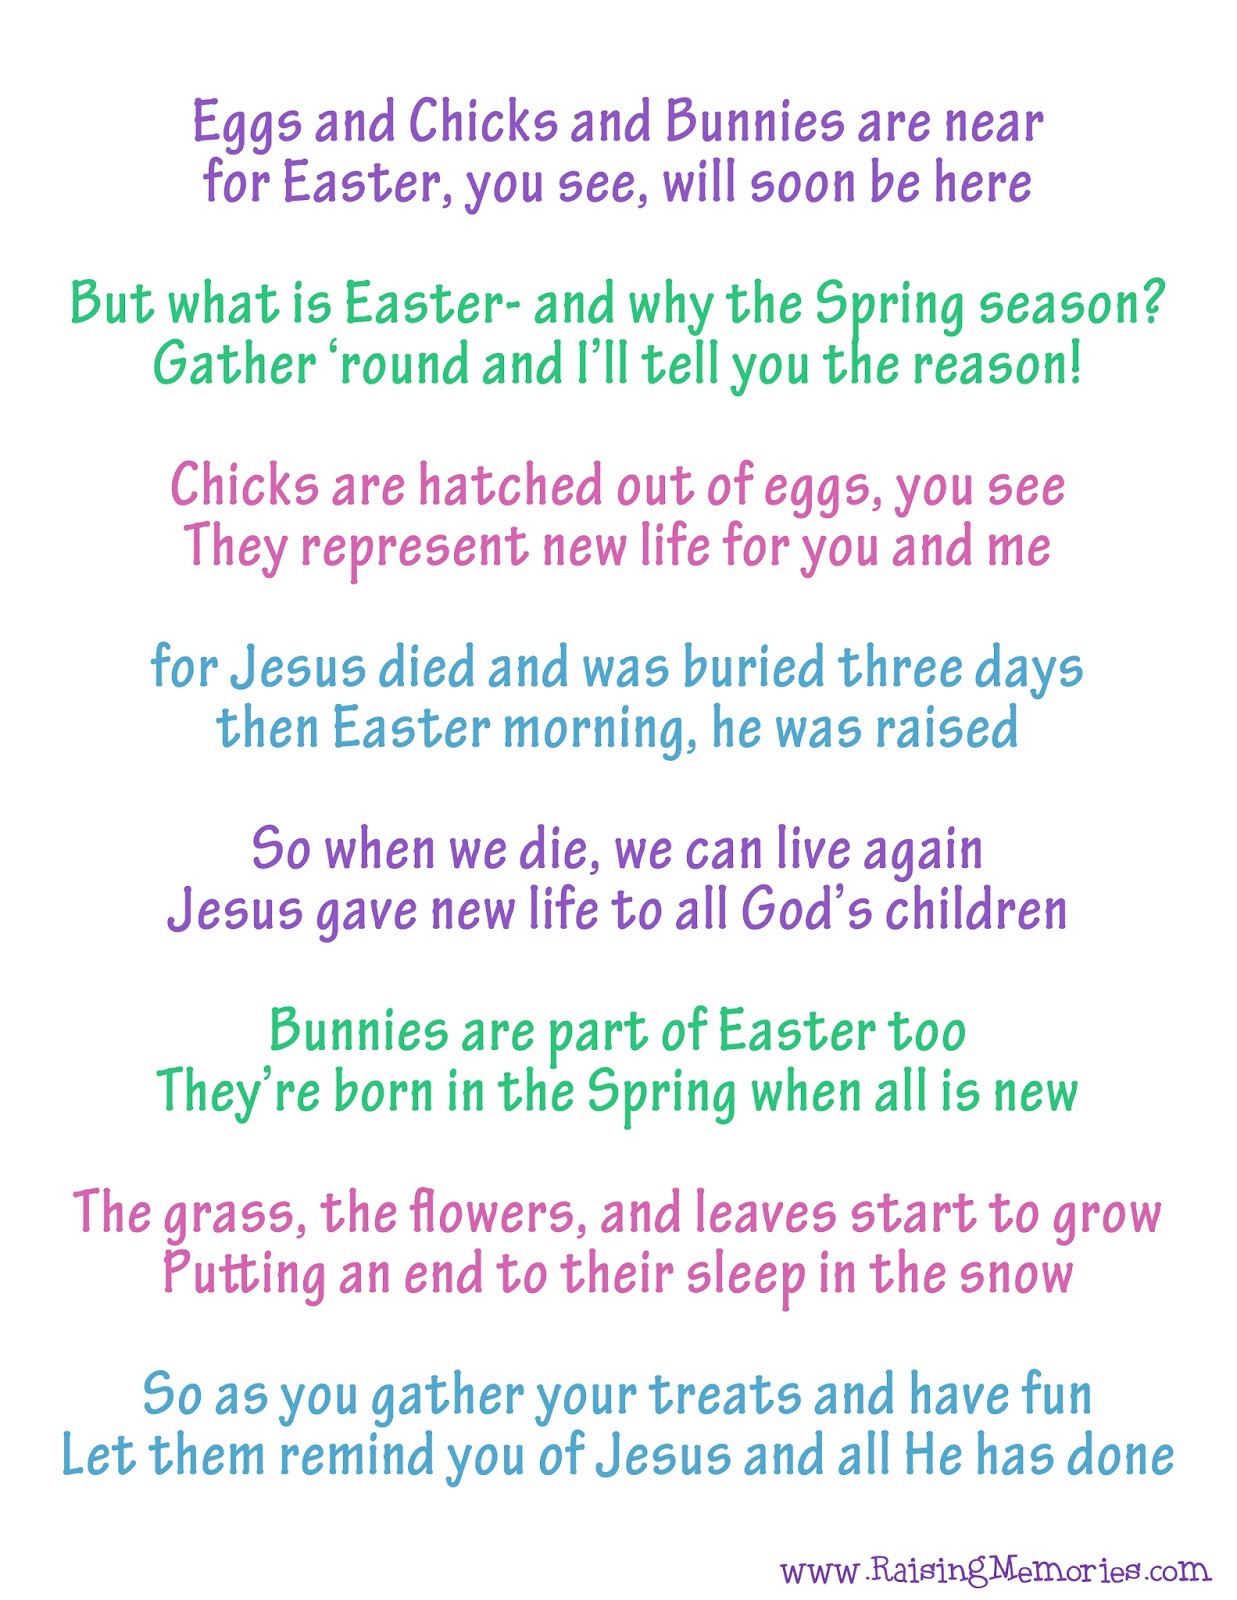 Raising Memories True Meaning Of Easter Poem Easter Symbols Something suggesting a poem (as in expressiveness, lyricism, or formal grace) the house we stayed in 15th century, in the meaning defined at sense 1. true meaning of easter poem easter